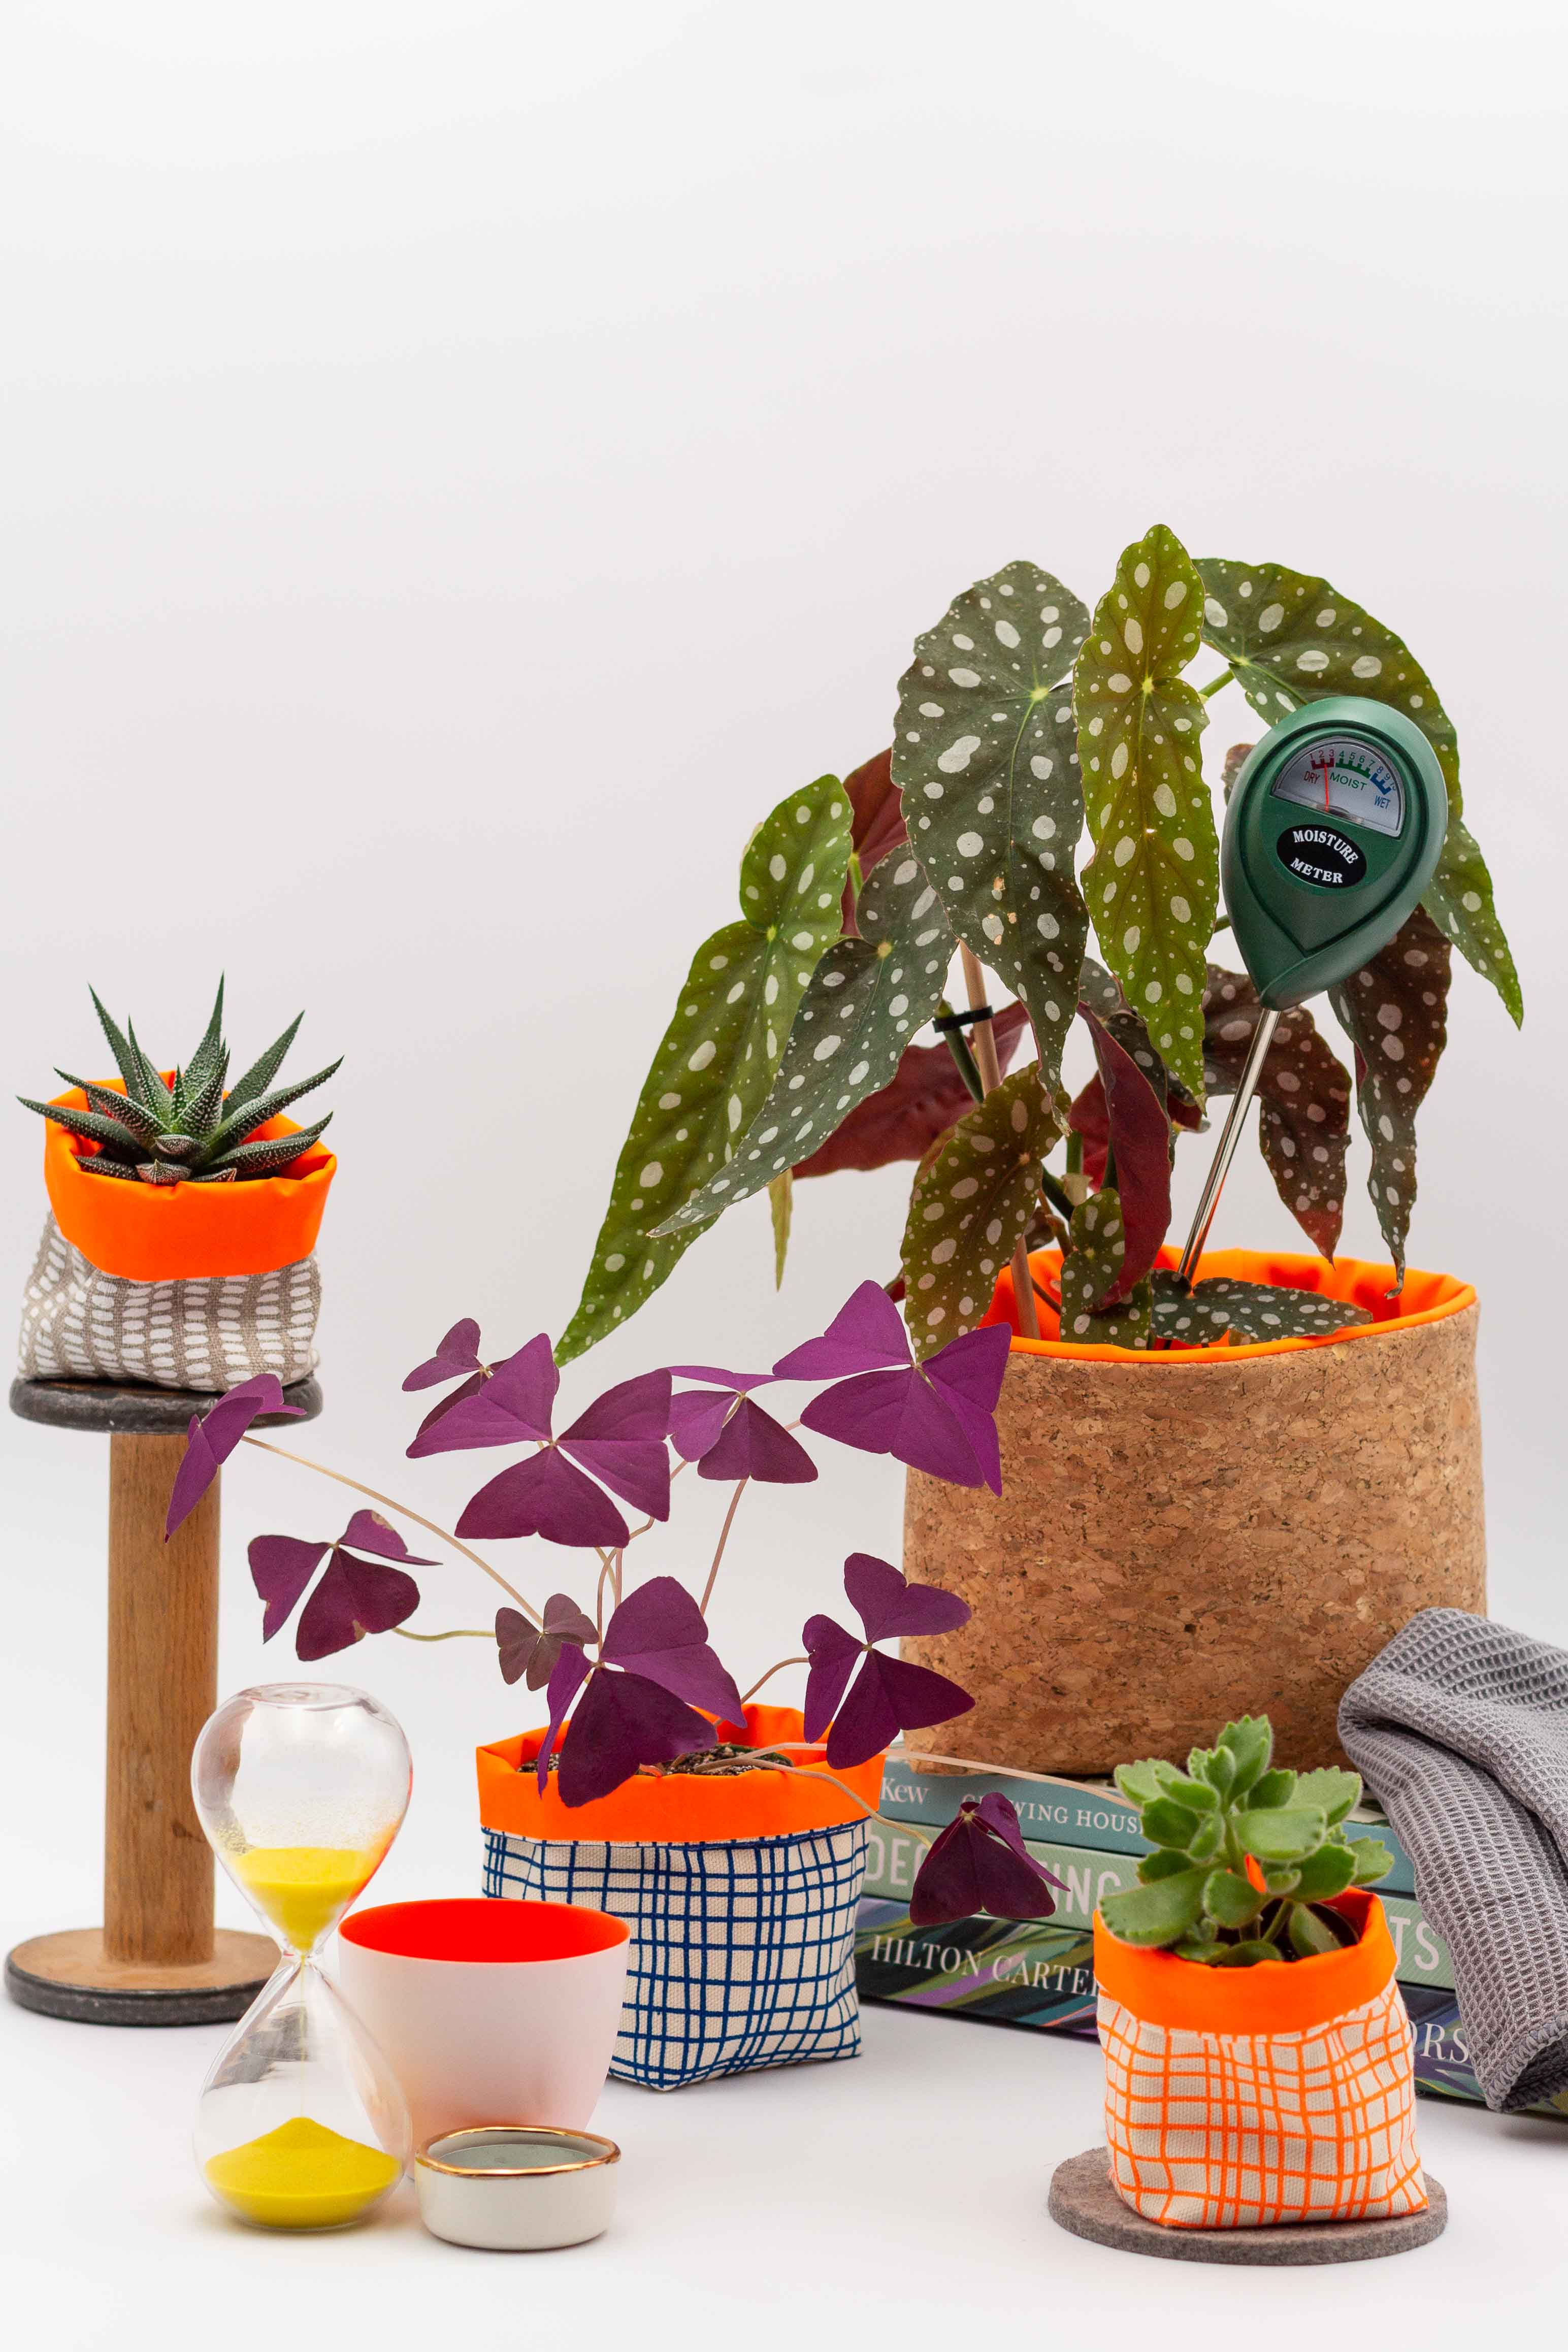 A series of plant accessories that would be perfect for someone who is more into houseplants. Larger fabric pots are show with easy to look after plants.